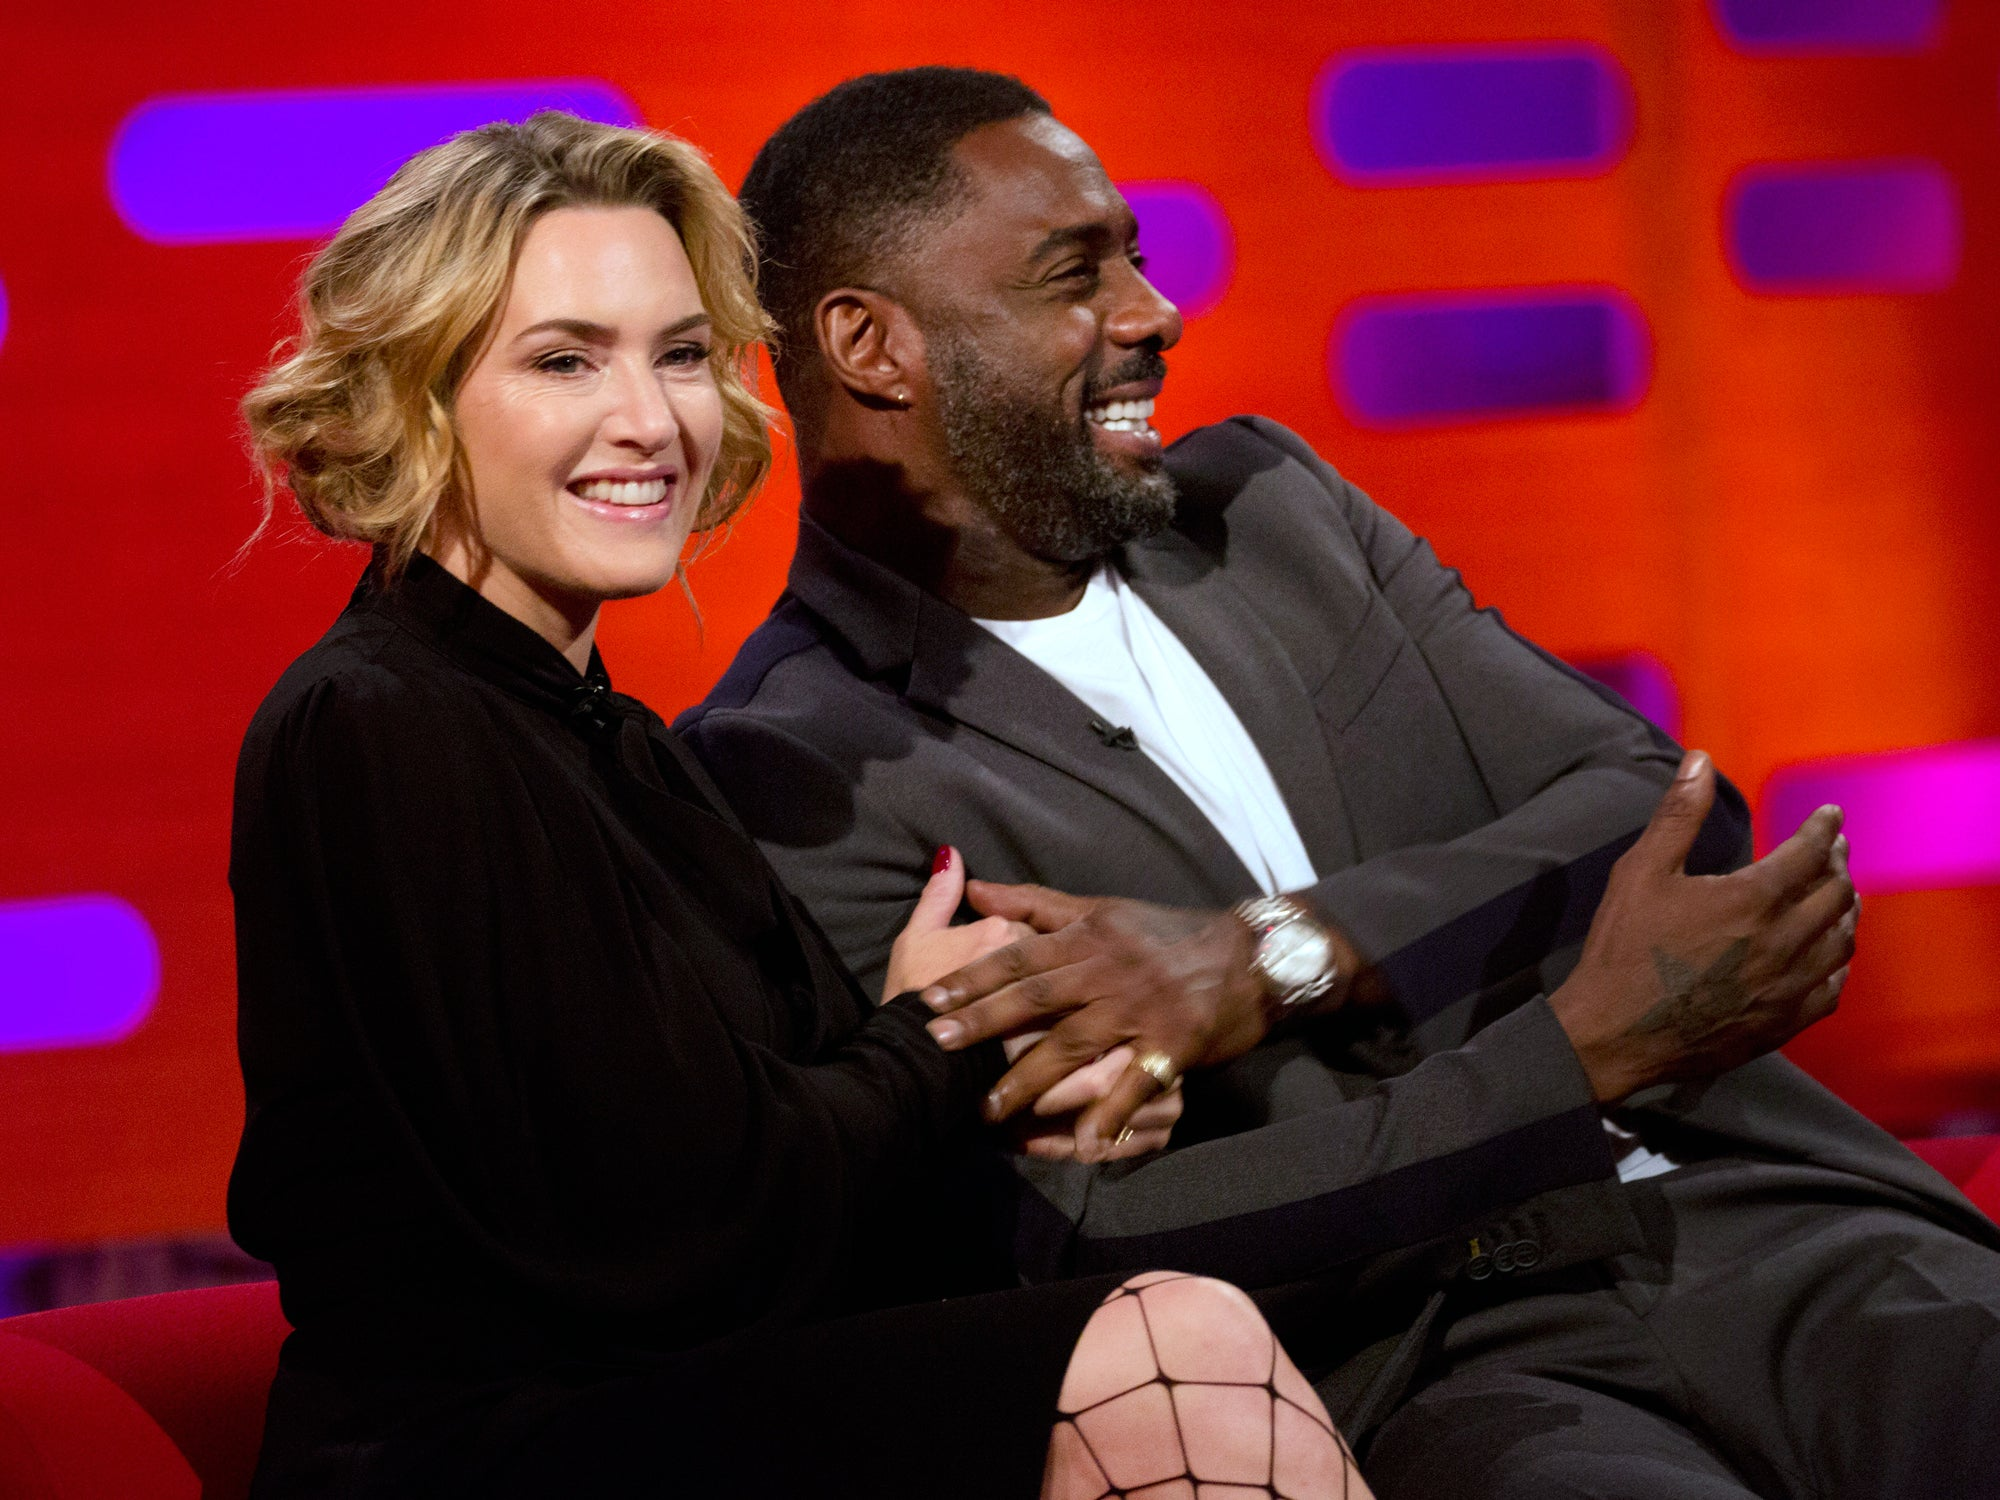 Kate Winslet Reveals Idris Elba Has A Foot Fetish